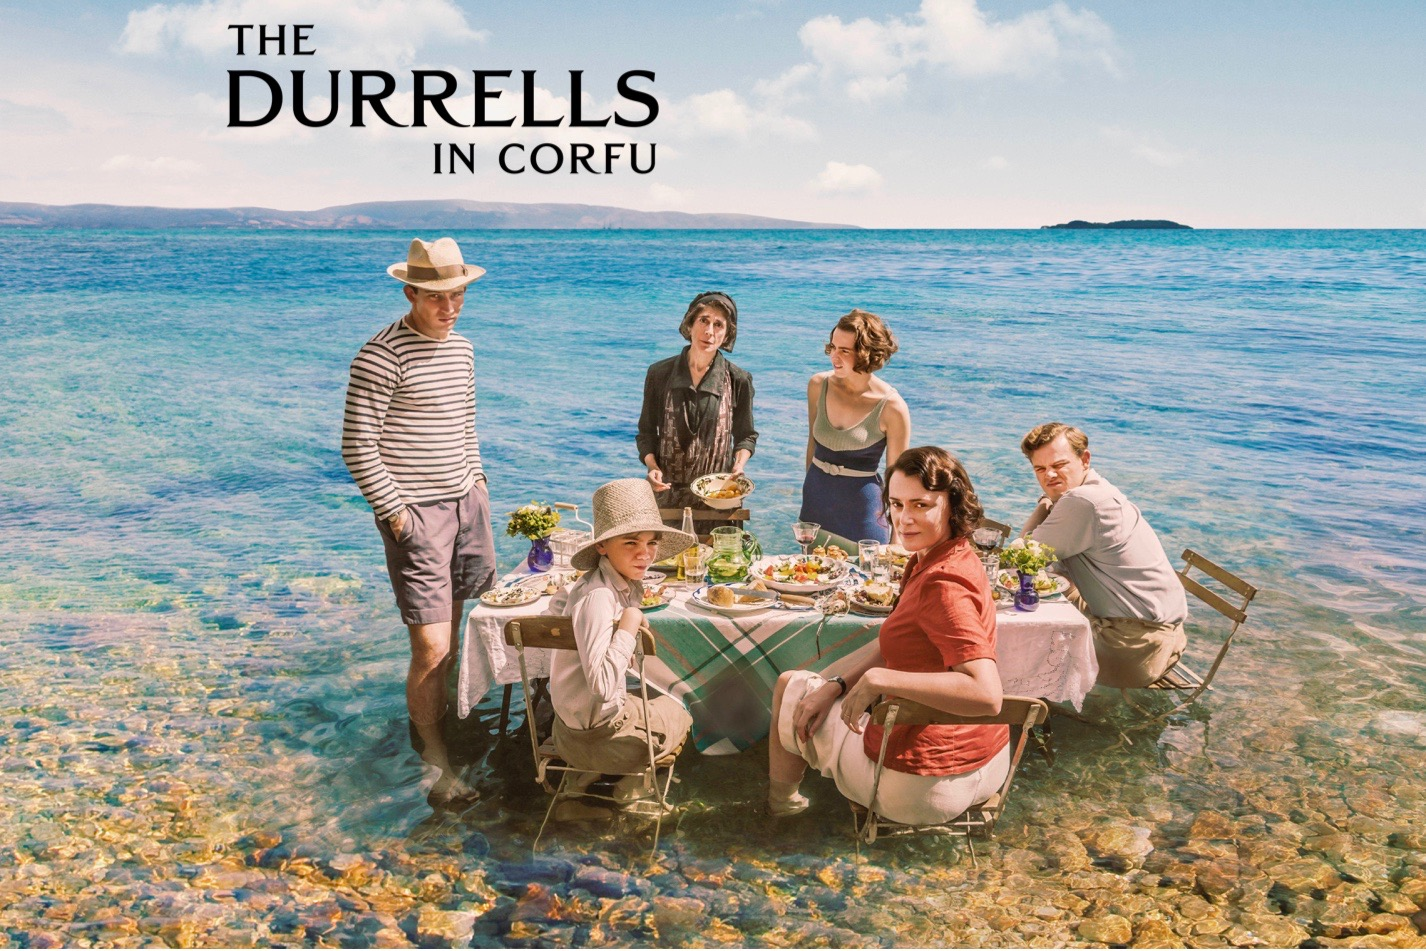 The Durrells in Corfu debuts Sunday, October 16 - 8 p.m.